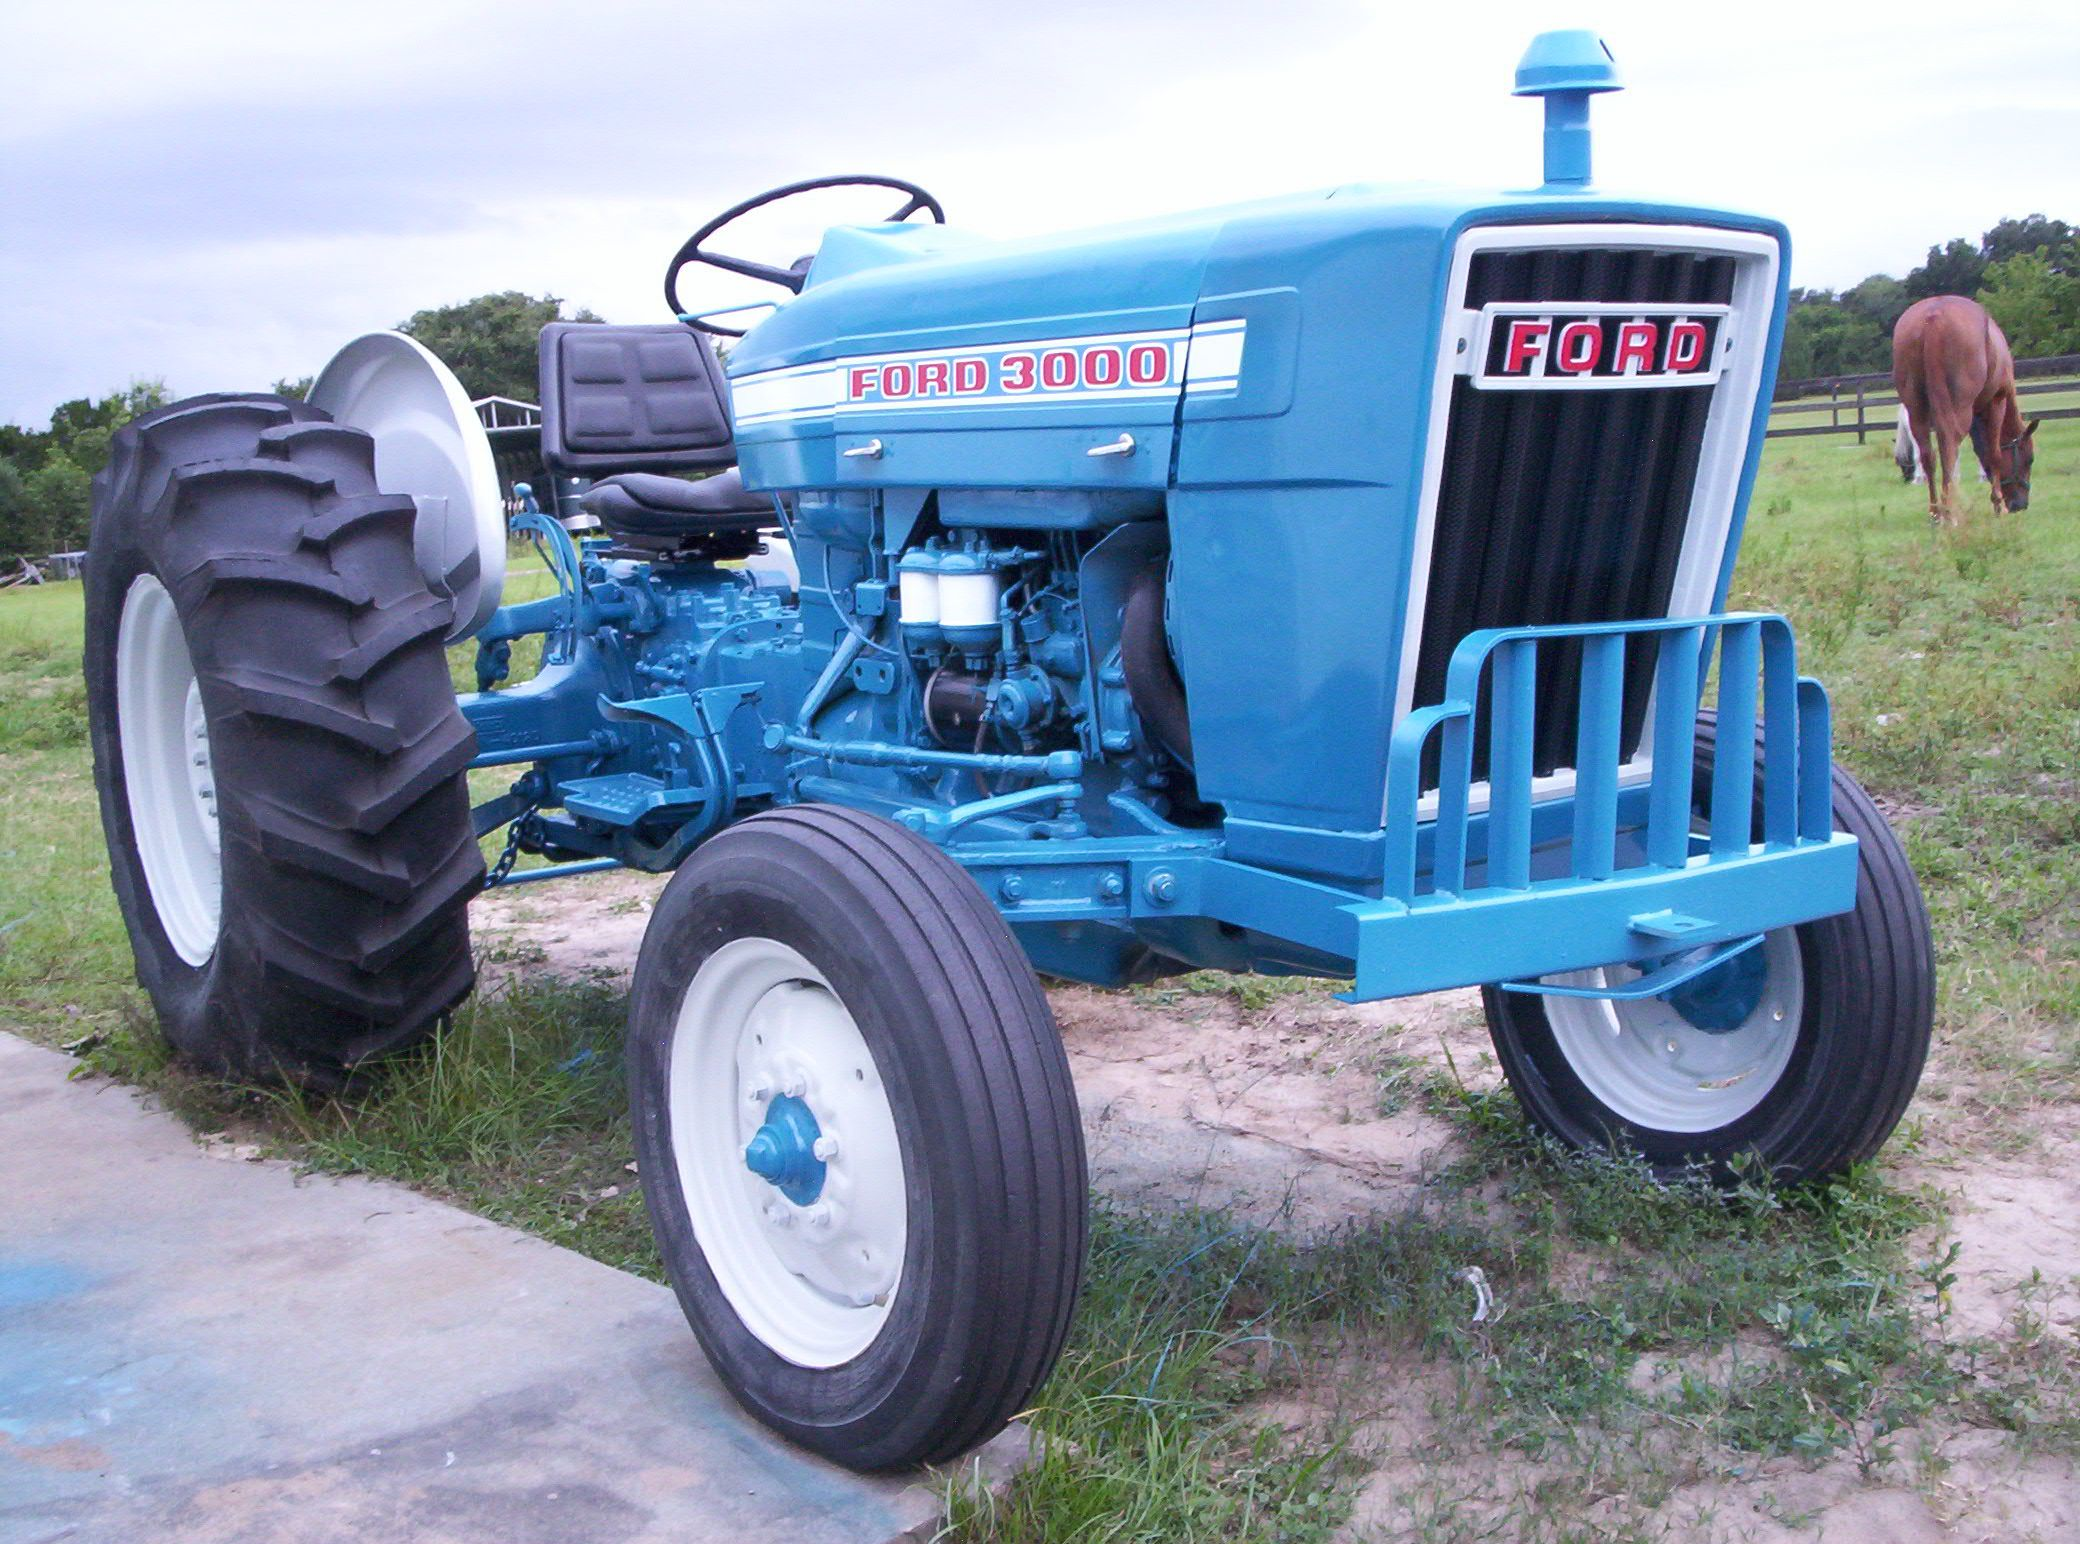 Ford 3000 Tractors Vintage Tractors New Holland Tractor